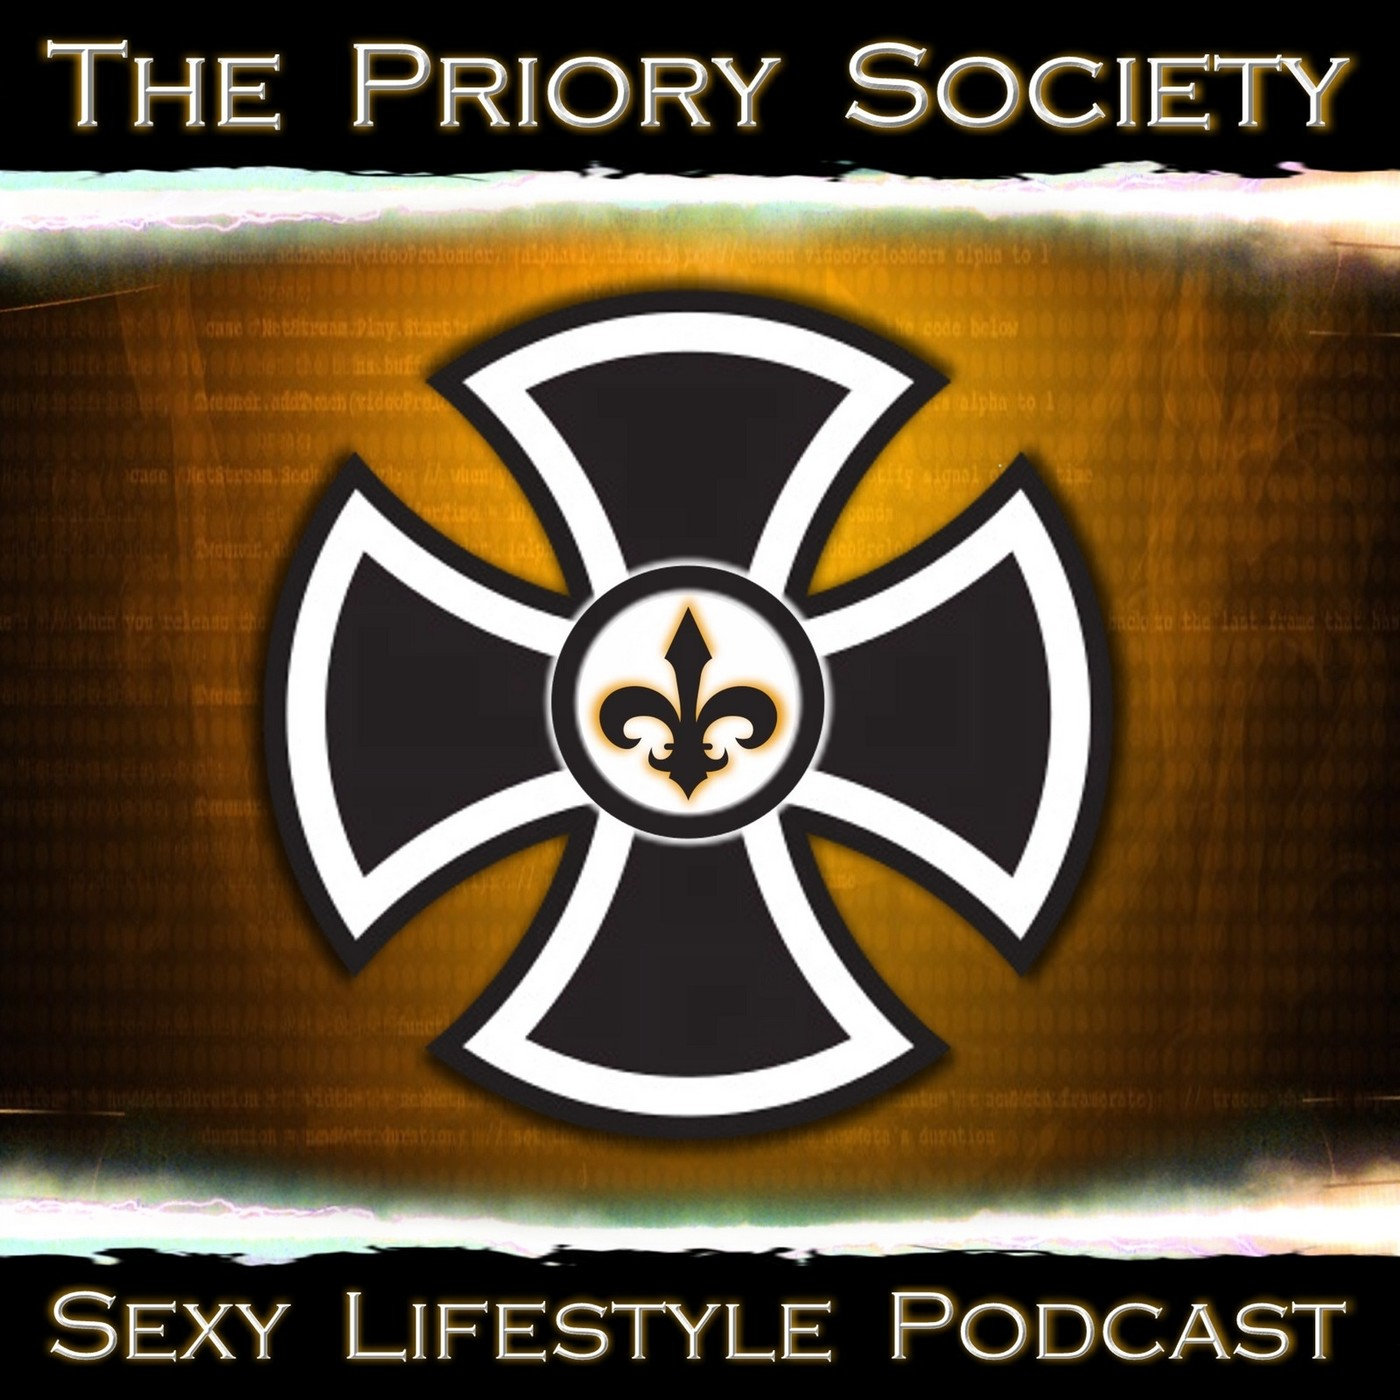 The Priory Society - A Sexy Li